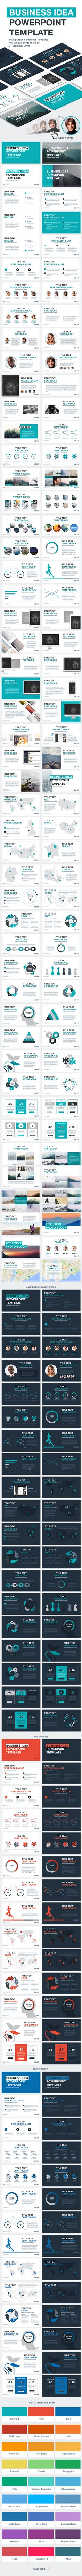 Business Idea - PowerPoint Template. Download here: http://graphicriver.net/item/business-idea/15721568?ref=ksioks